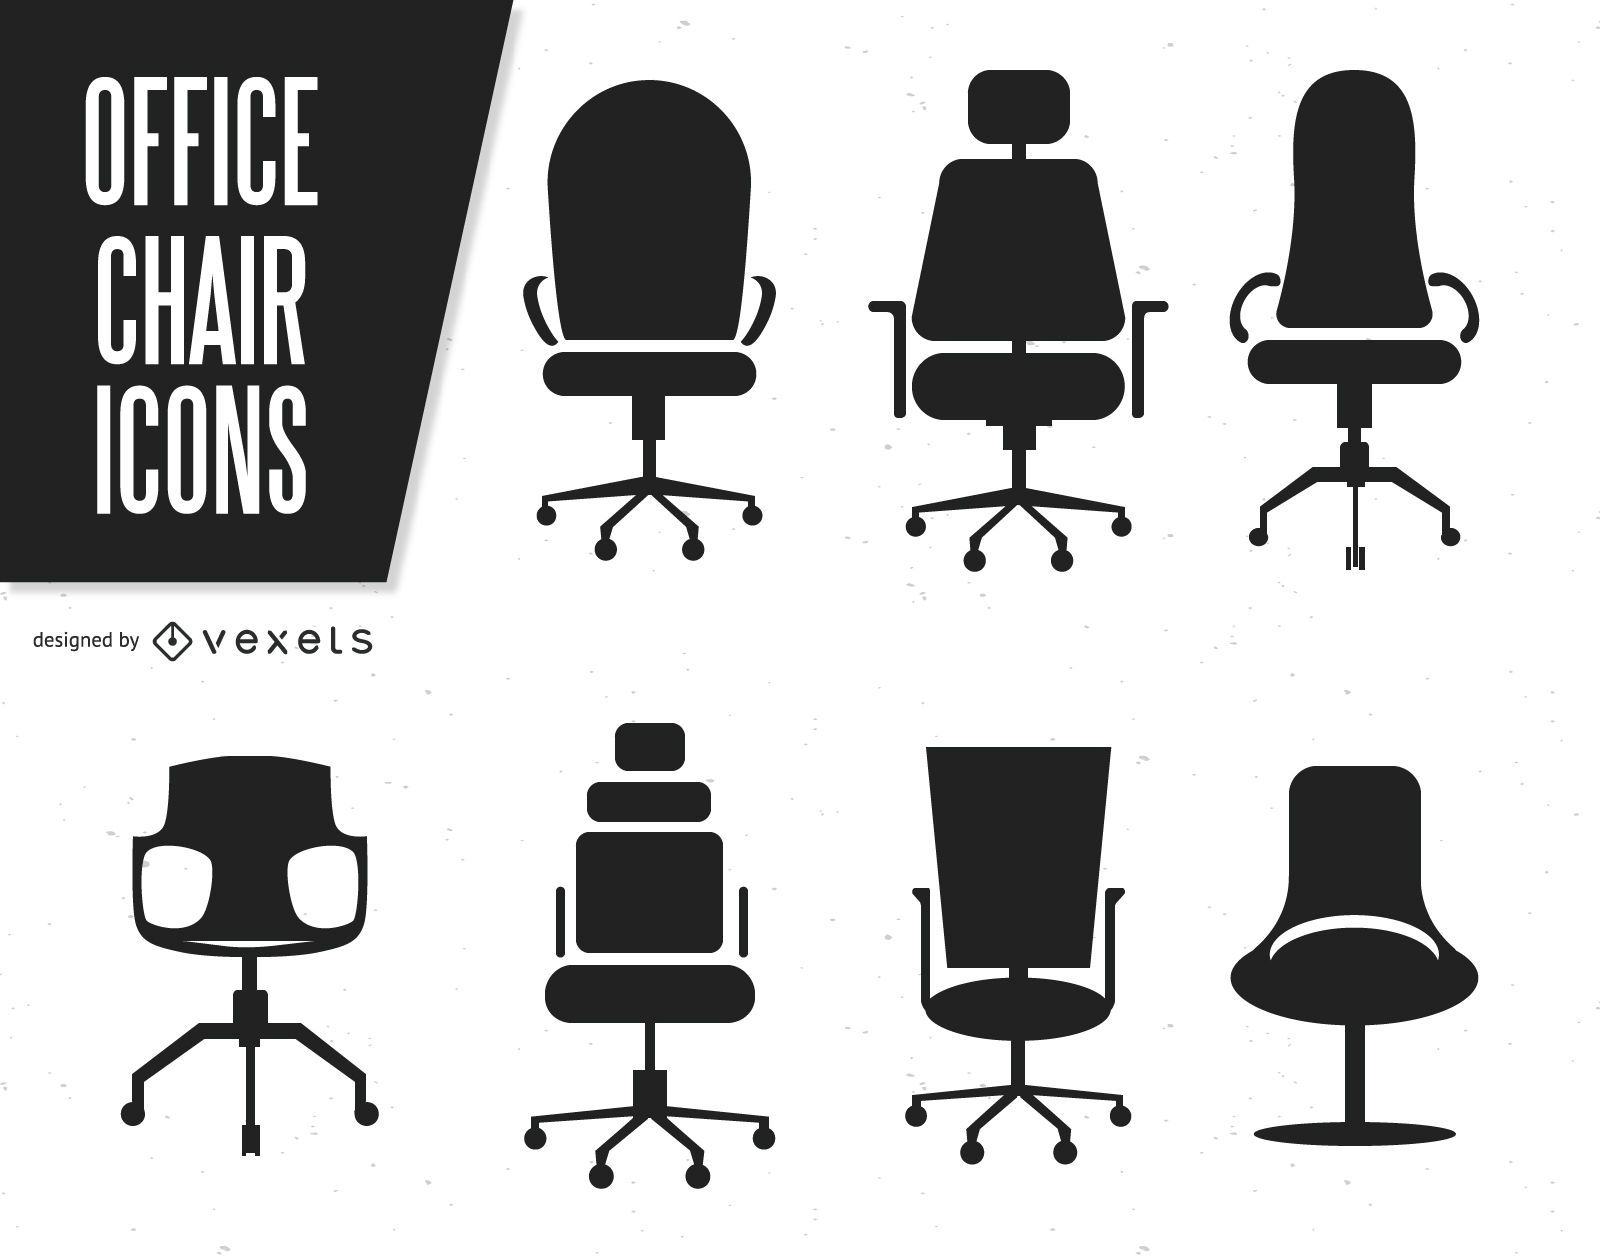 dodge viper office chair. Silhouettes Of Office Chairs Dodge Viper Chair